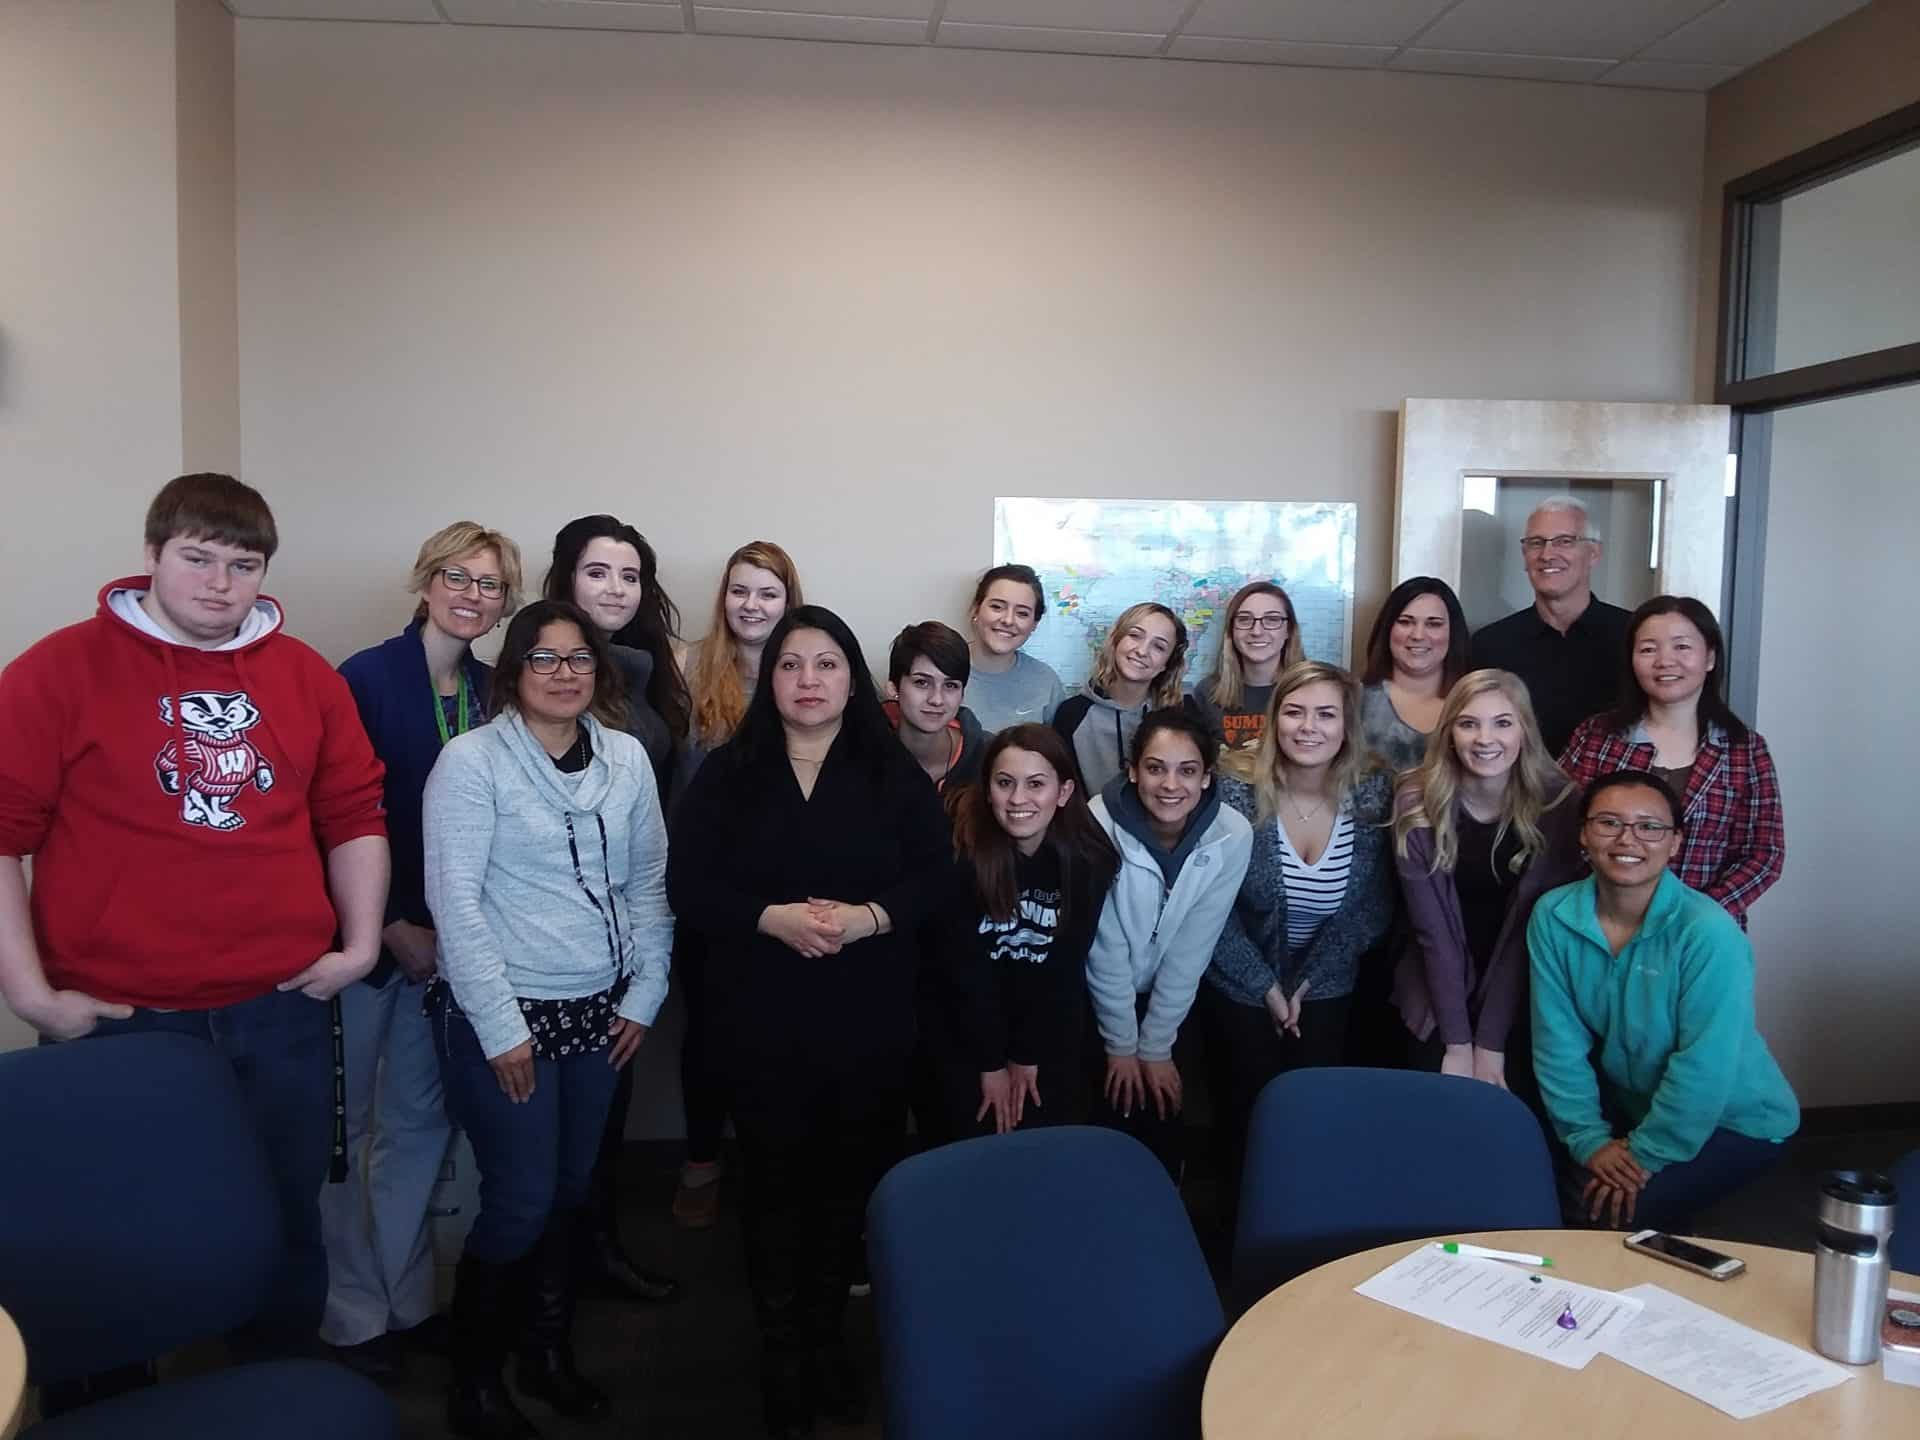 Moraine Park ELL and Occupational Communication classes